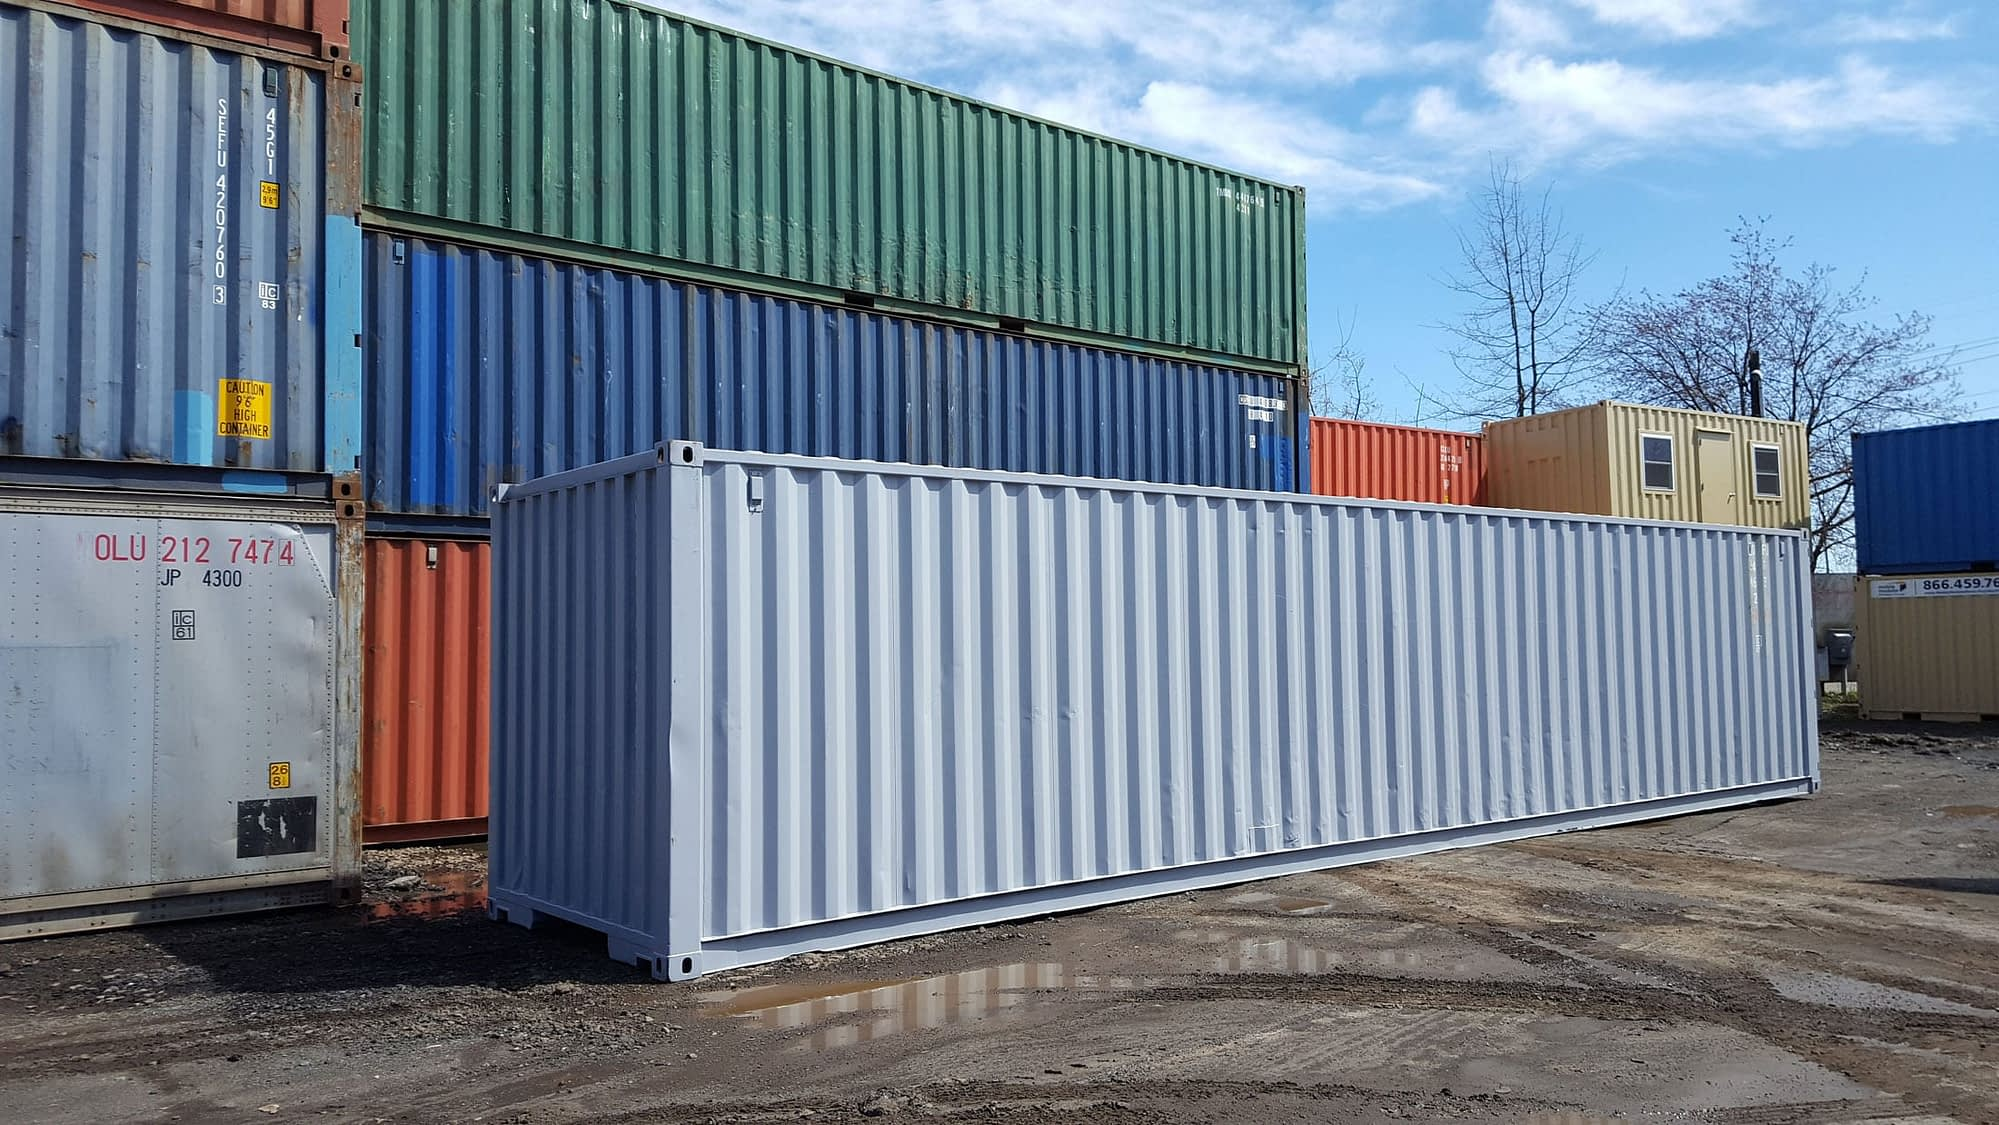 TRS offers flexible terms including painting a 40ft container for a fee